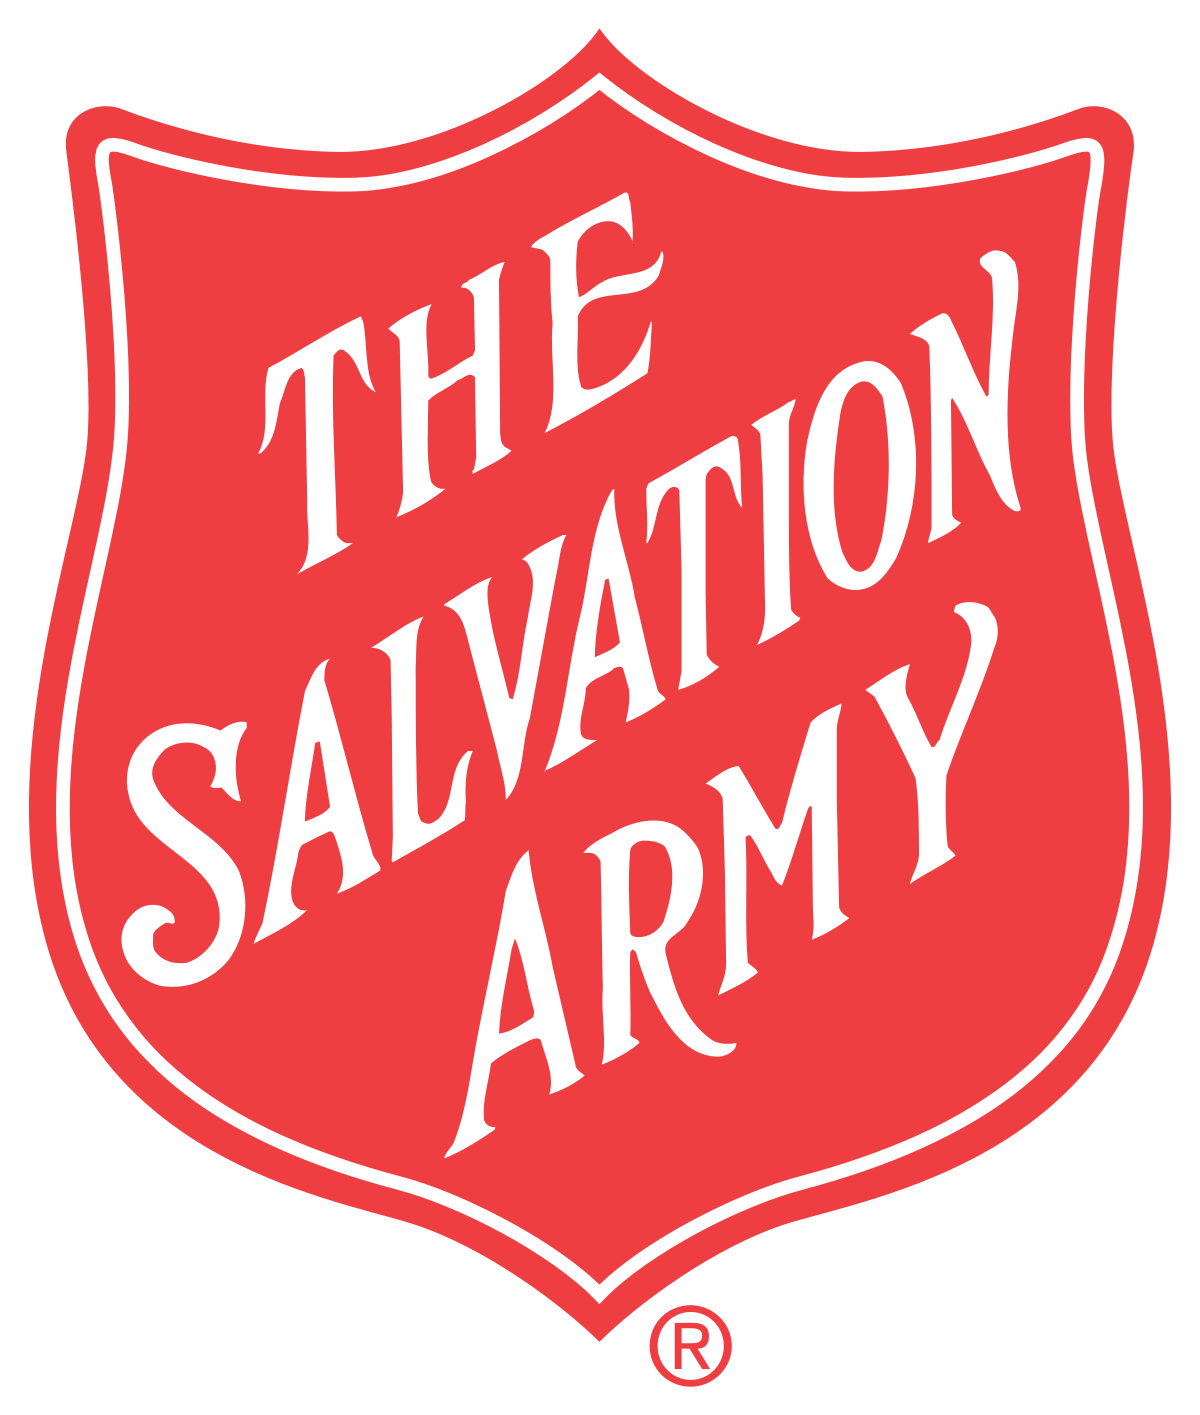 Left tilted queen crown clipart opaque background graphic transparent library The Salvation Army - Wikipedia graphic transparent library